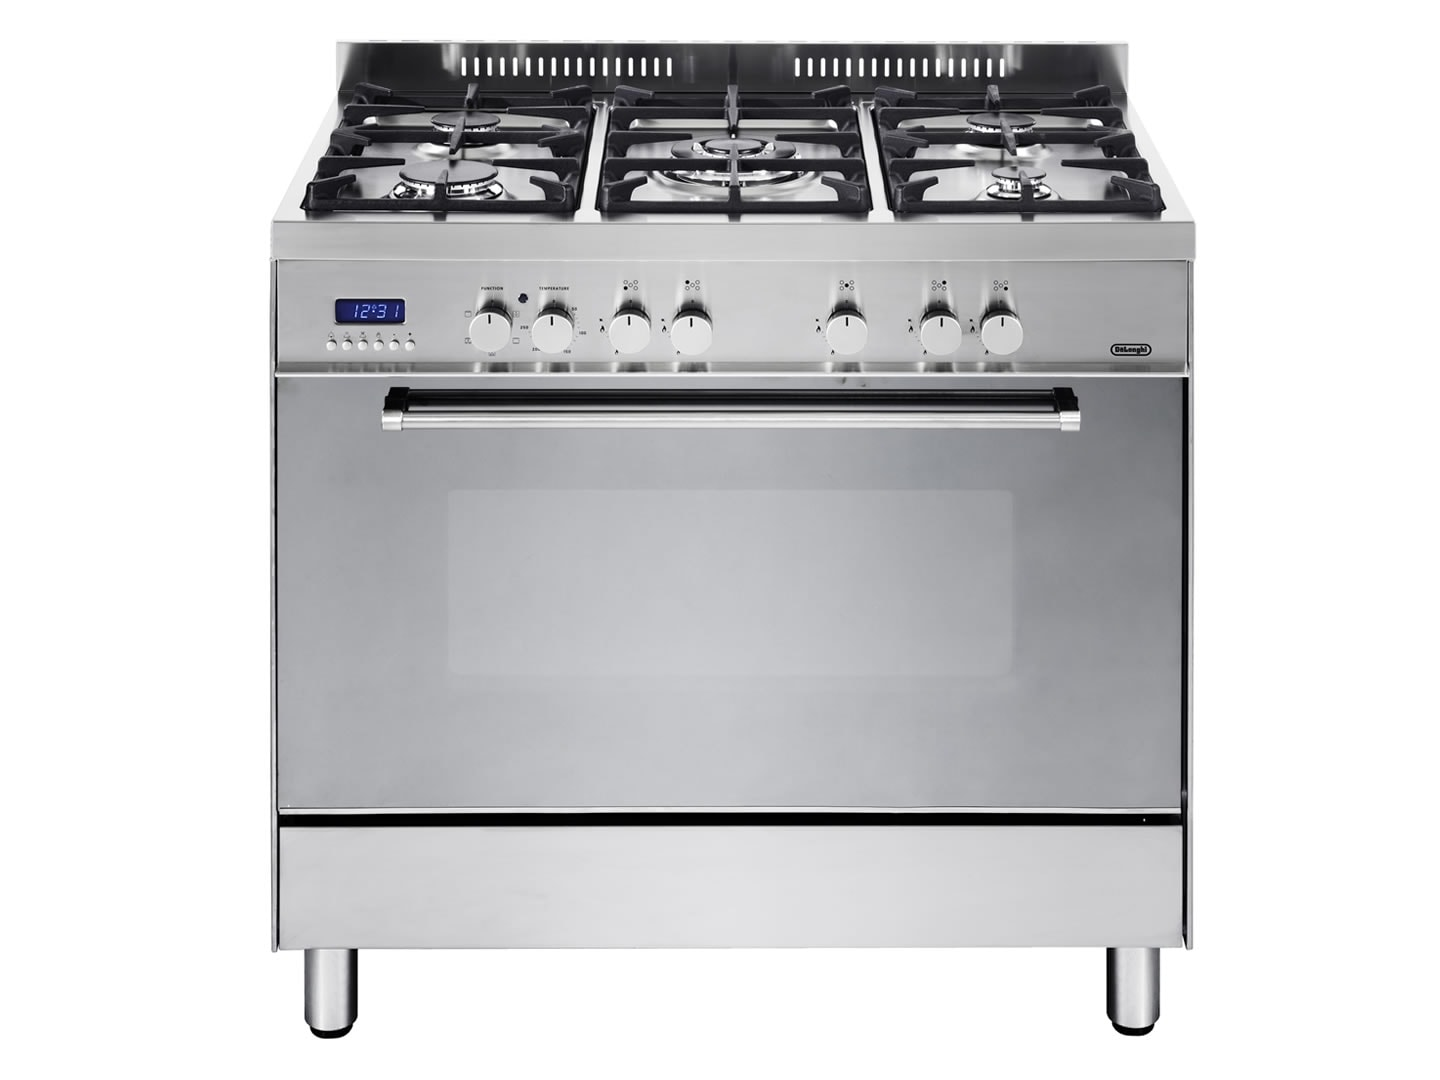 High Quality Freestanding Oven With Gas Cooktop And Wok Burner DEF905GW1X1